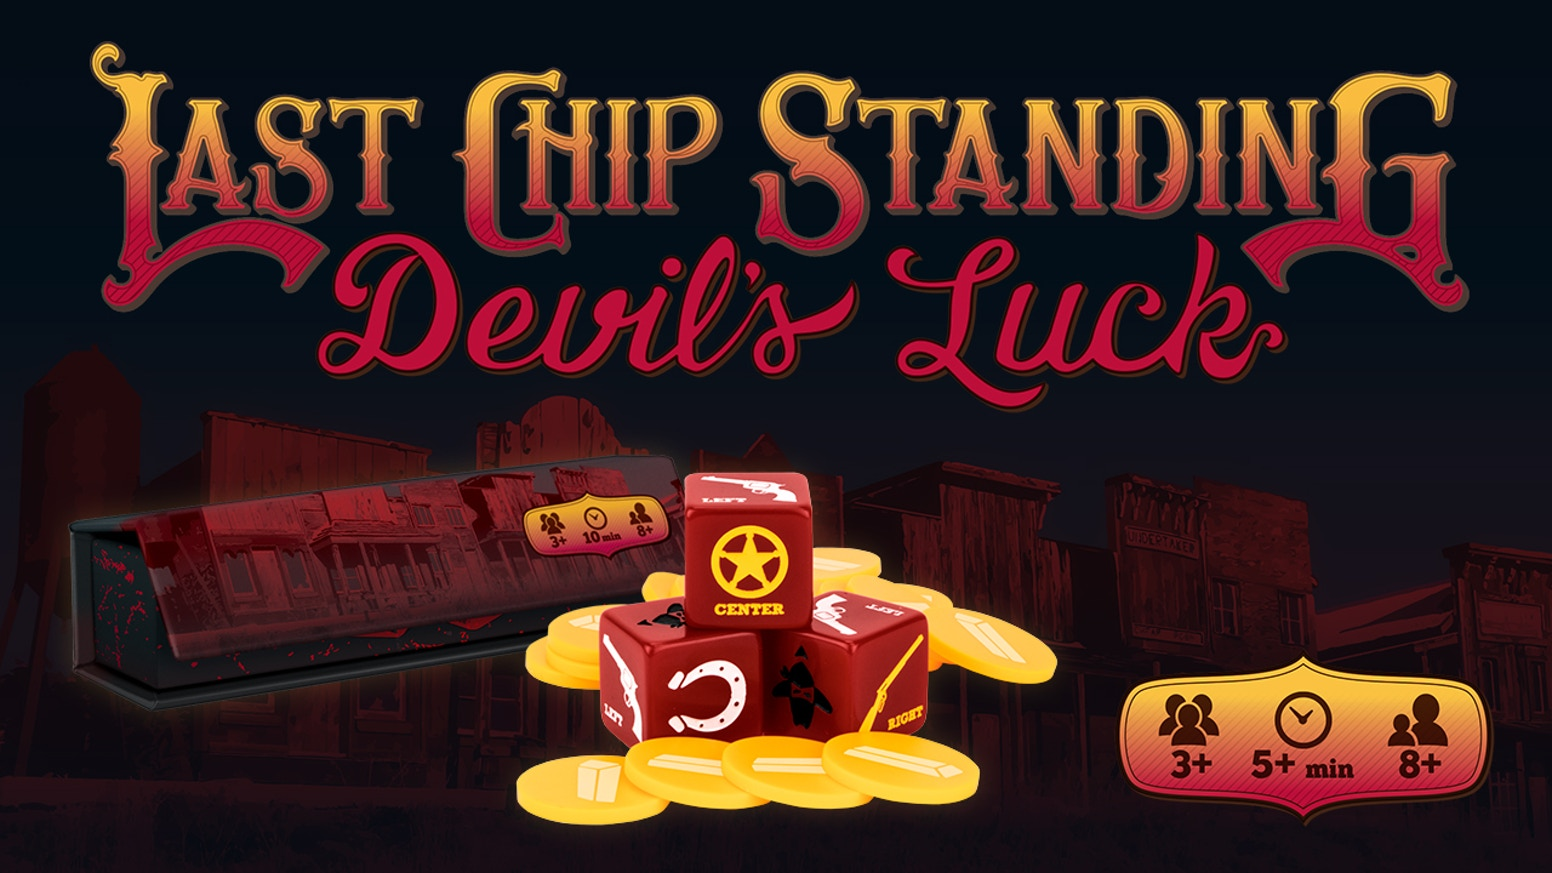 In this Wild Western game of chance, roll dice, pass and steal loot, and be the last outlaw with chips to win the whole pot.